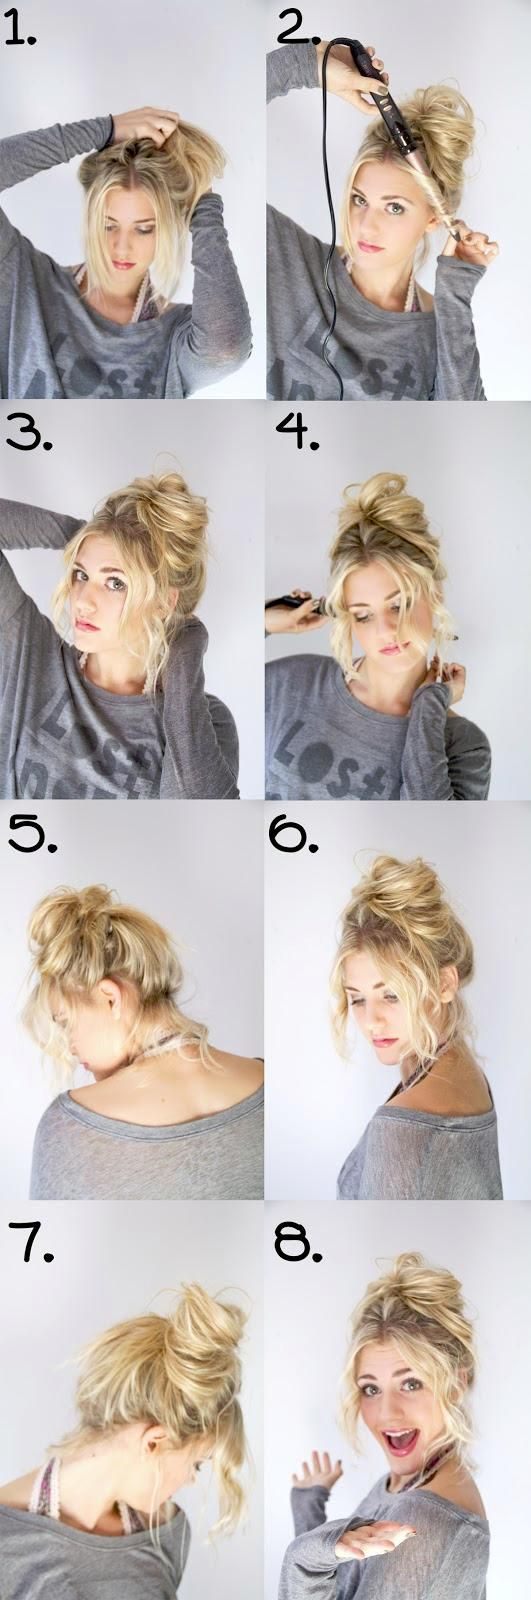 This pin pisses me off. At no point does it show how to make the messy bun, just the freakin' bangs. Whatever, I'll stare at it til I figure it out.